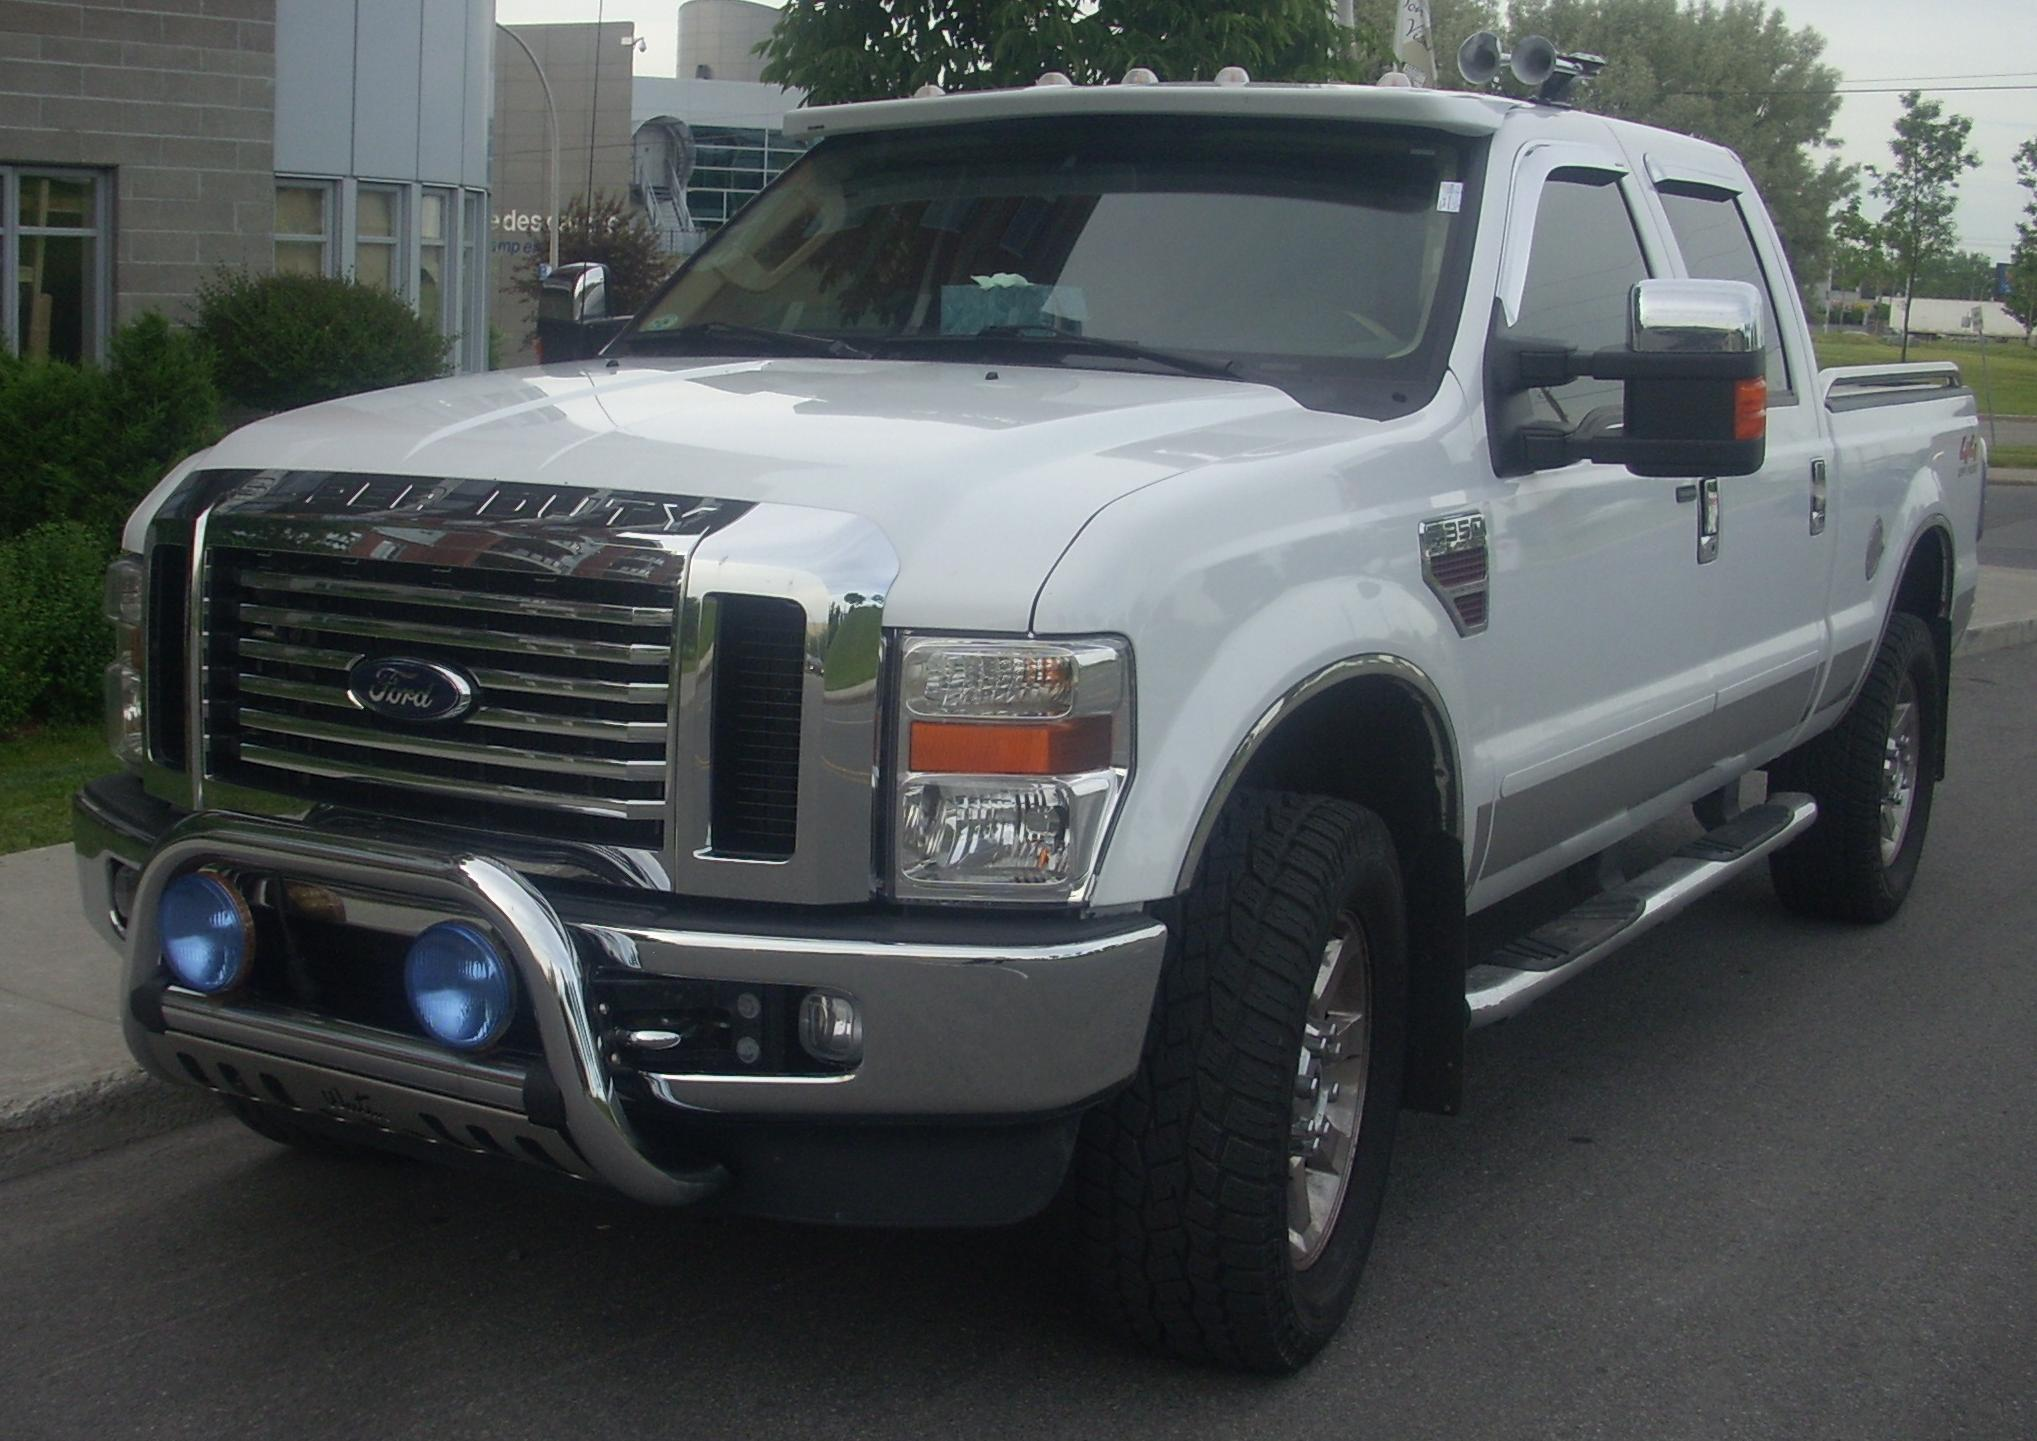 2007 Ford F-350 Super Duty #13